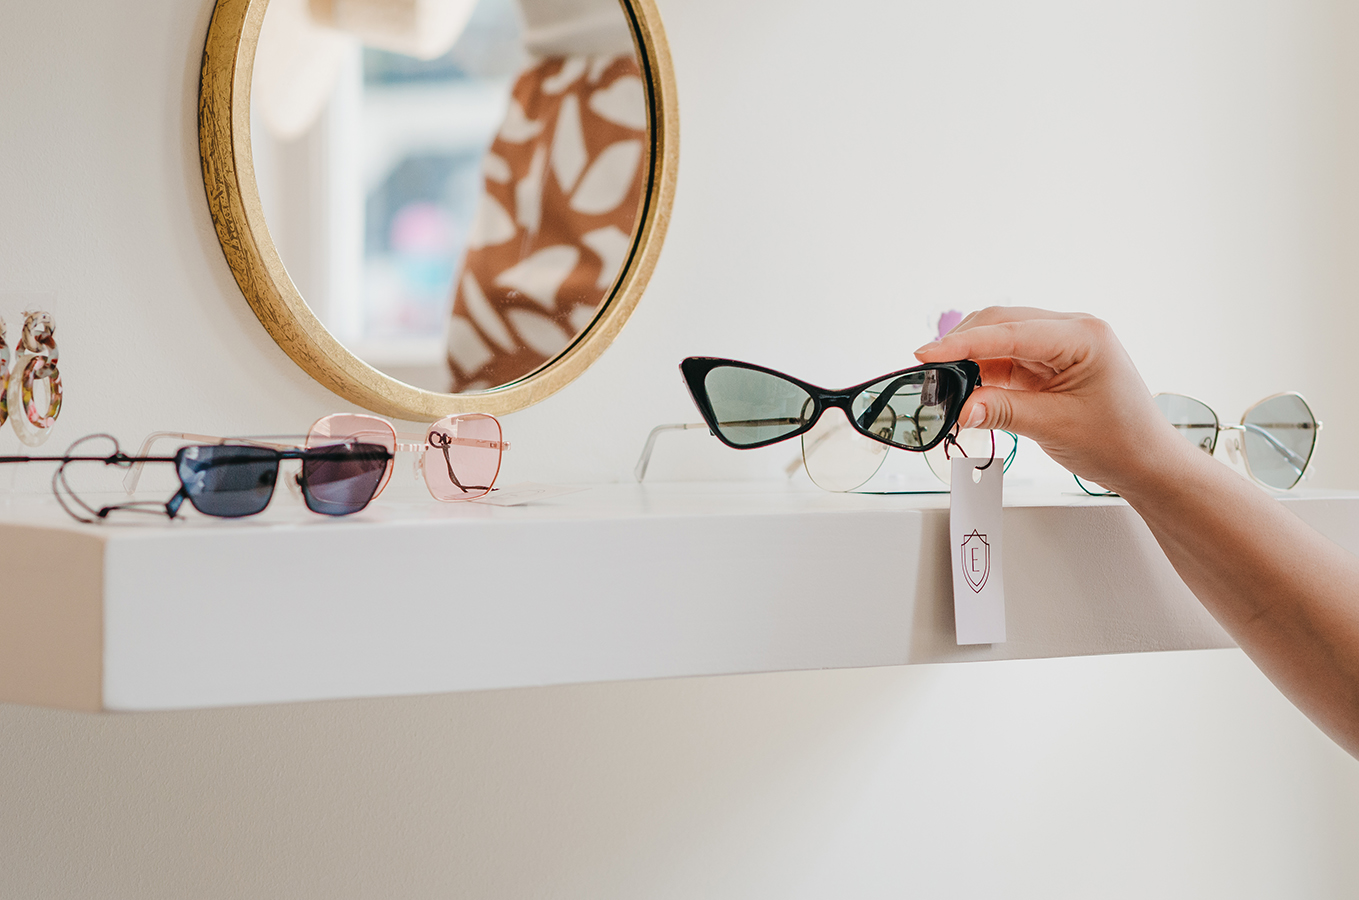 flourish-collaborative-edition-shop-savannah-floating-shelf-display-sunglasses.jpg